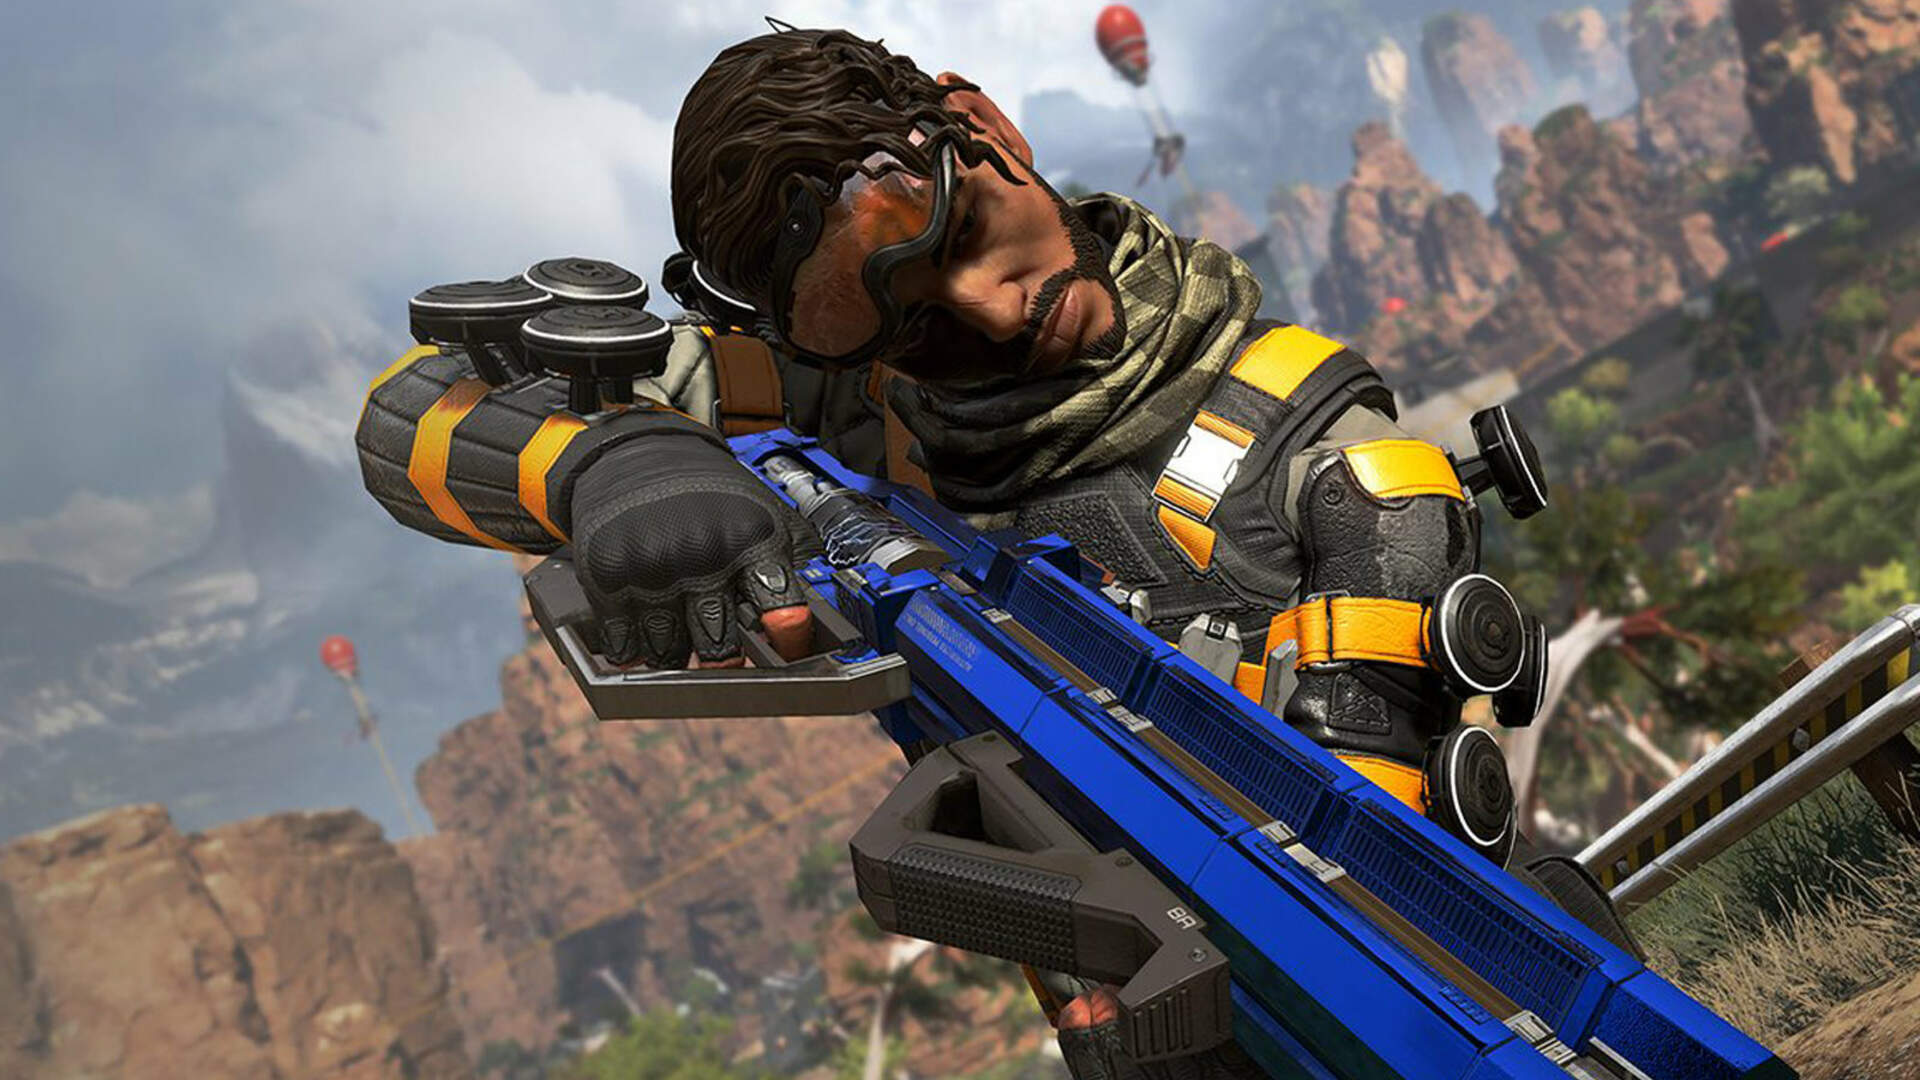 Apex Legends is Sticking With Seasonal Update to Not Overwork the Team, Respawn Founder Says